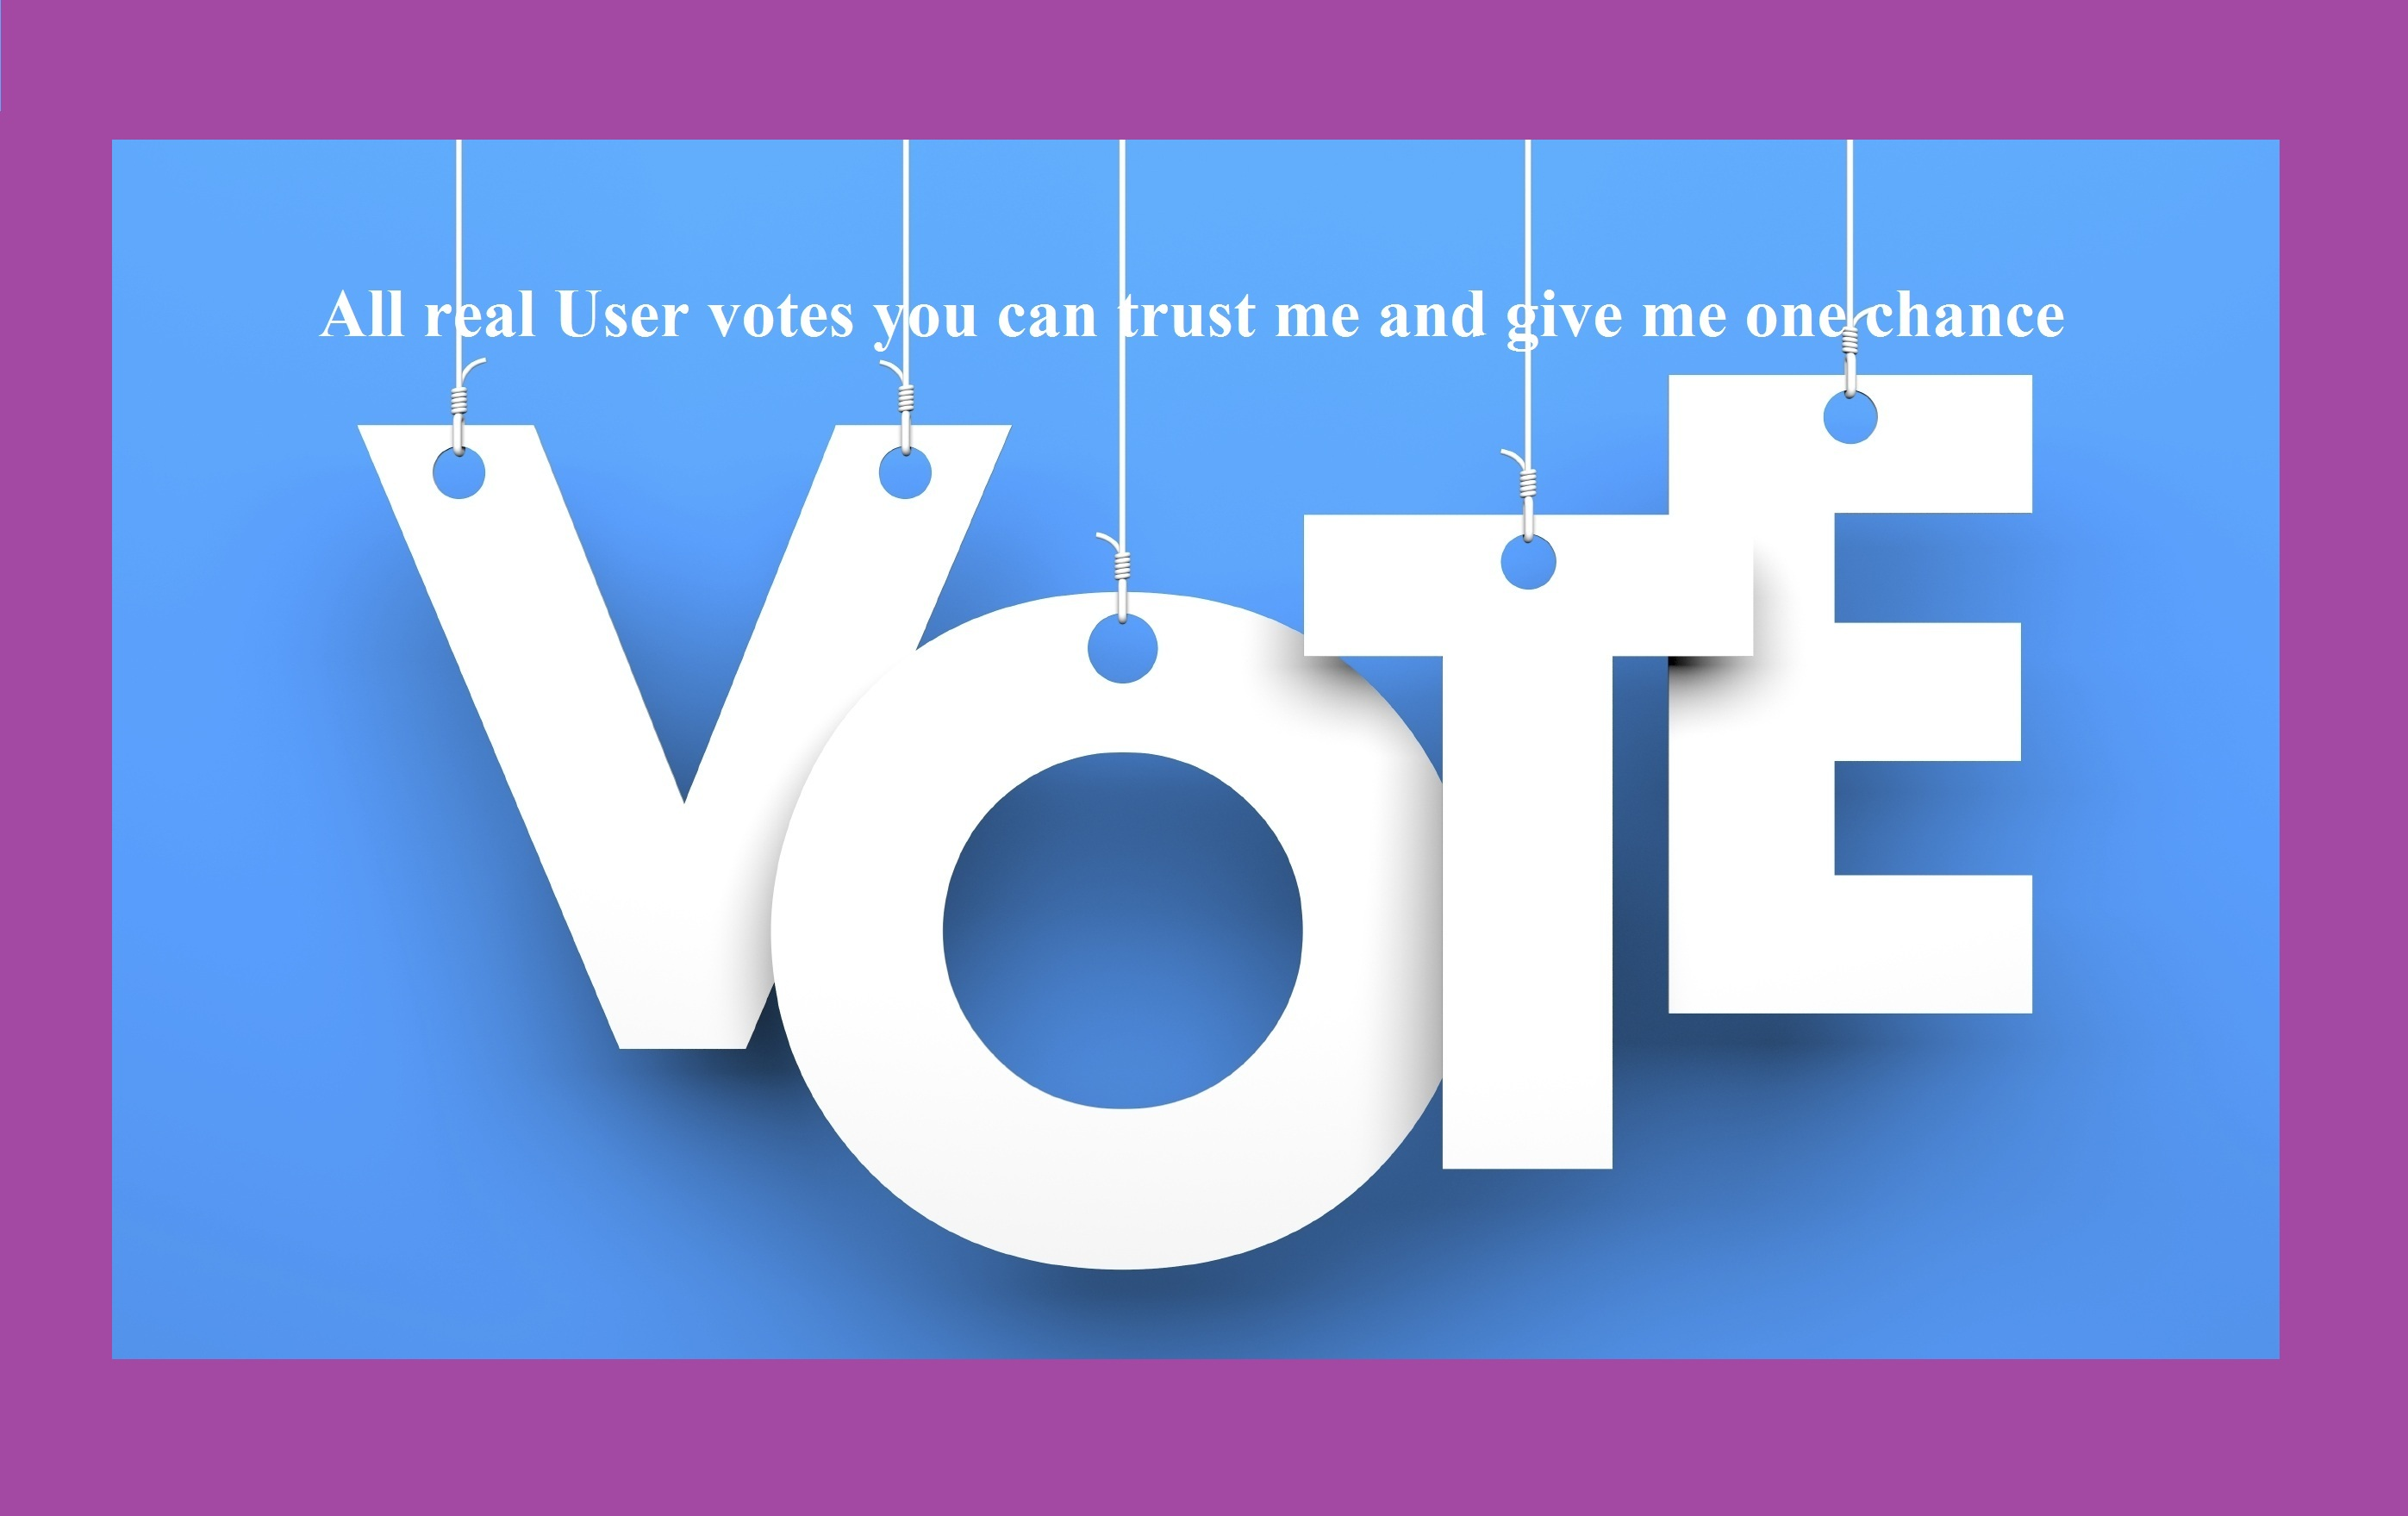 Provide you 100 Votes in Any Contest online poll